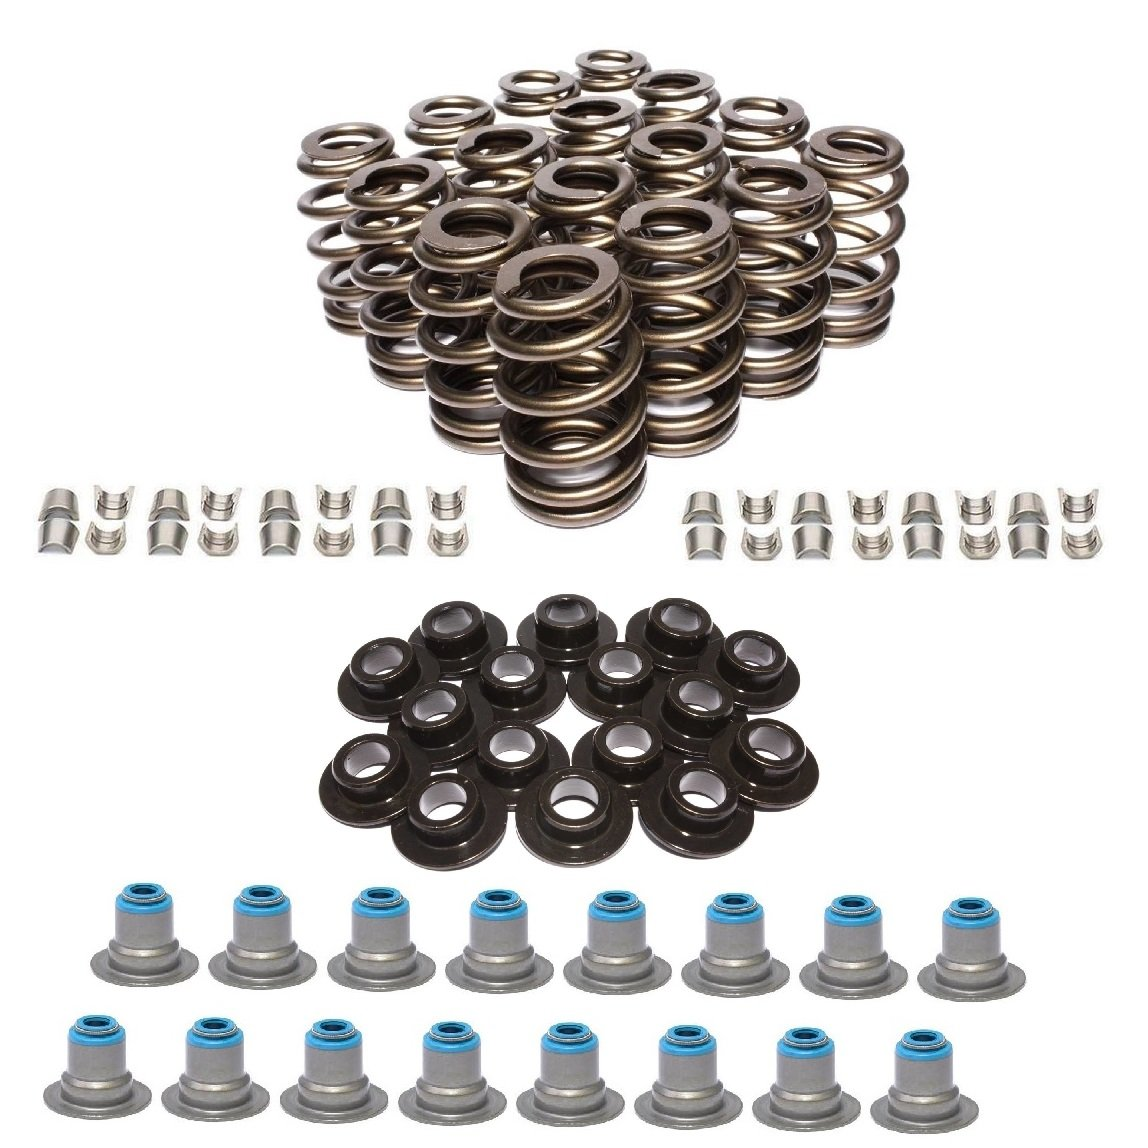 AMS Racing GM LS1 LS2 LS3 LSX 4.8 5.3 5.7 6.0 6.2 Beehive Valve Springs Kit with Seals, Retainers, and Locks (.580 Max Lift)